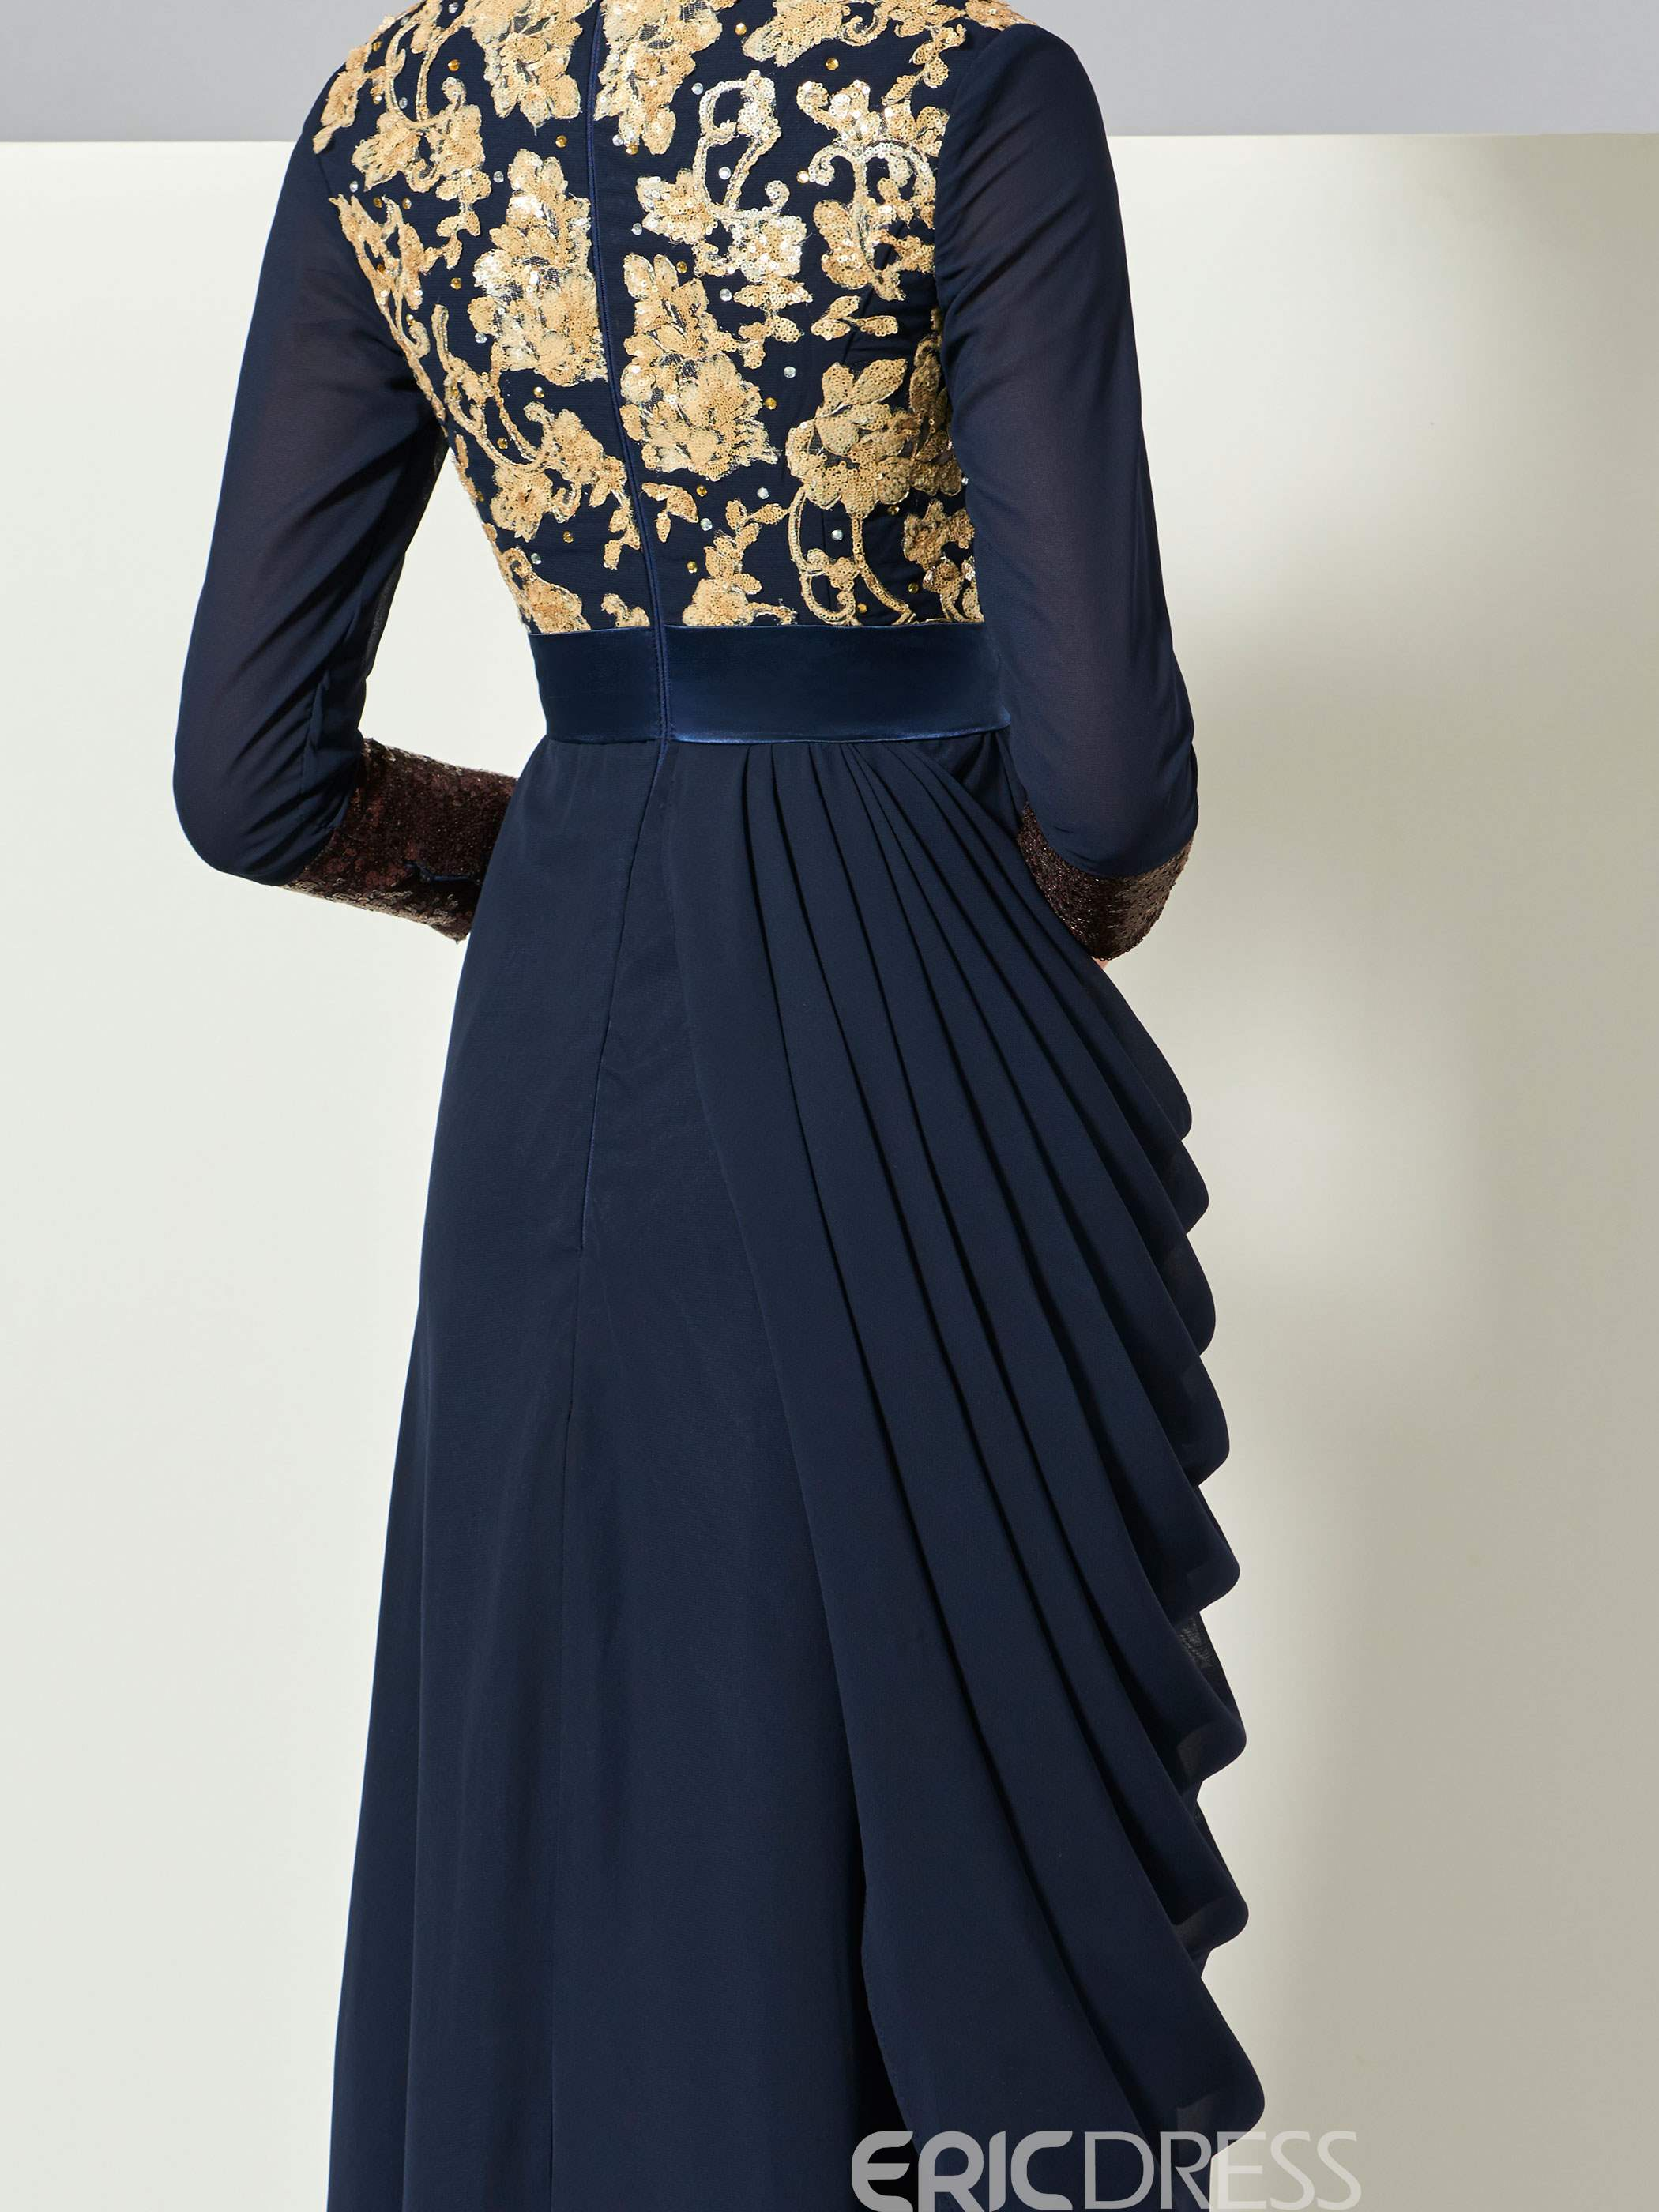 Ericdress Arabic Style A Line Long Sleeve Applique Lace Evening Dress